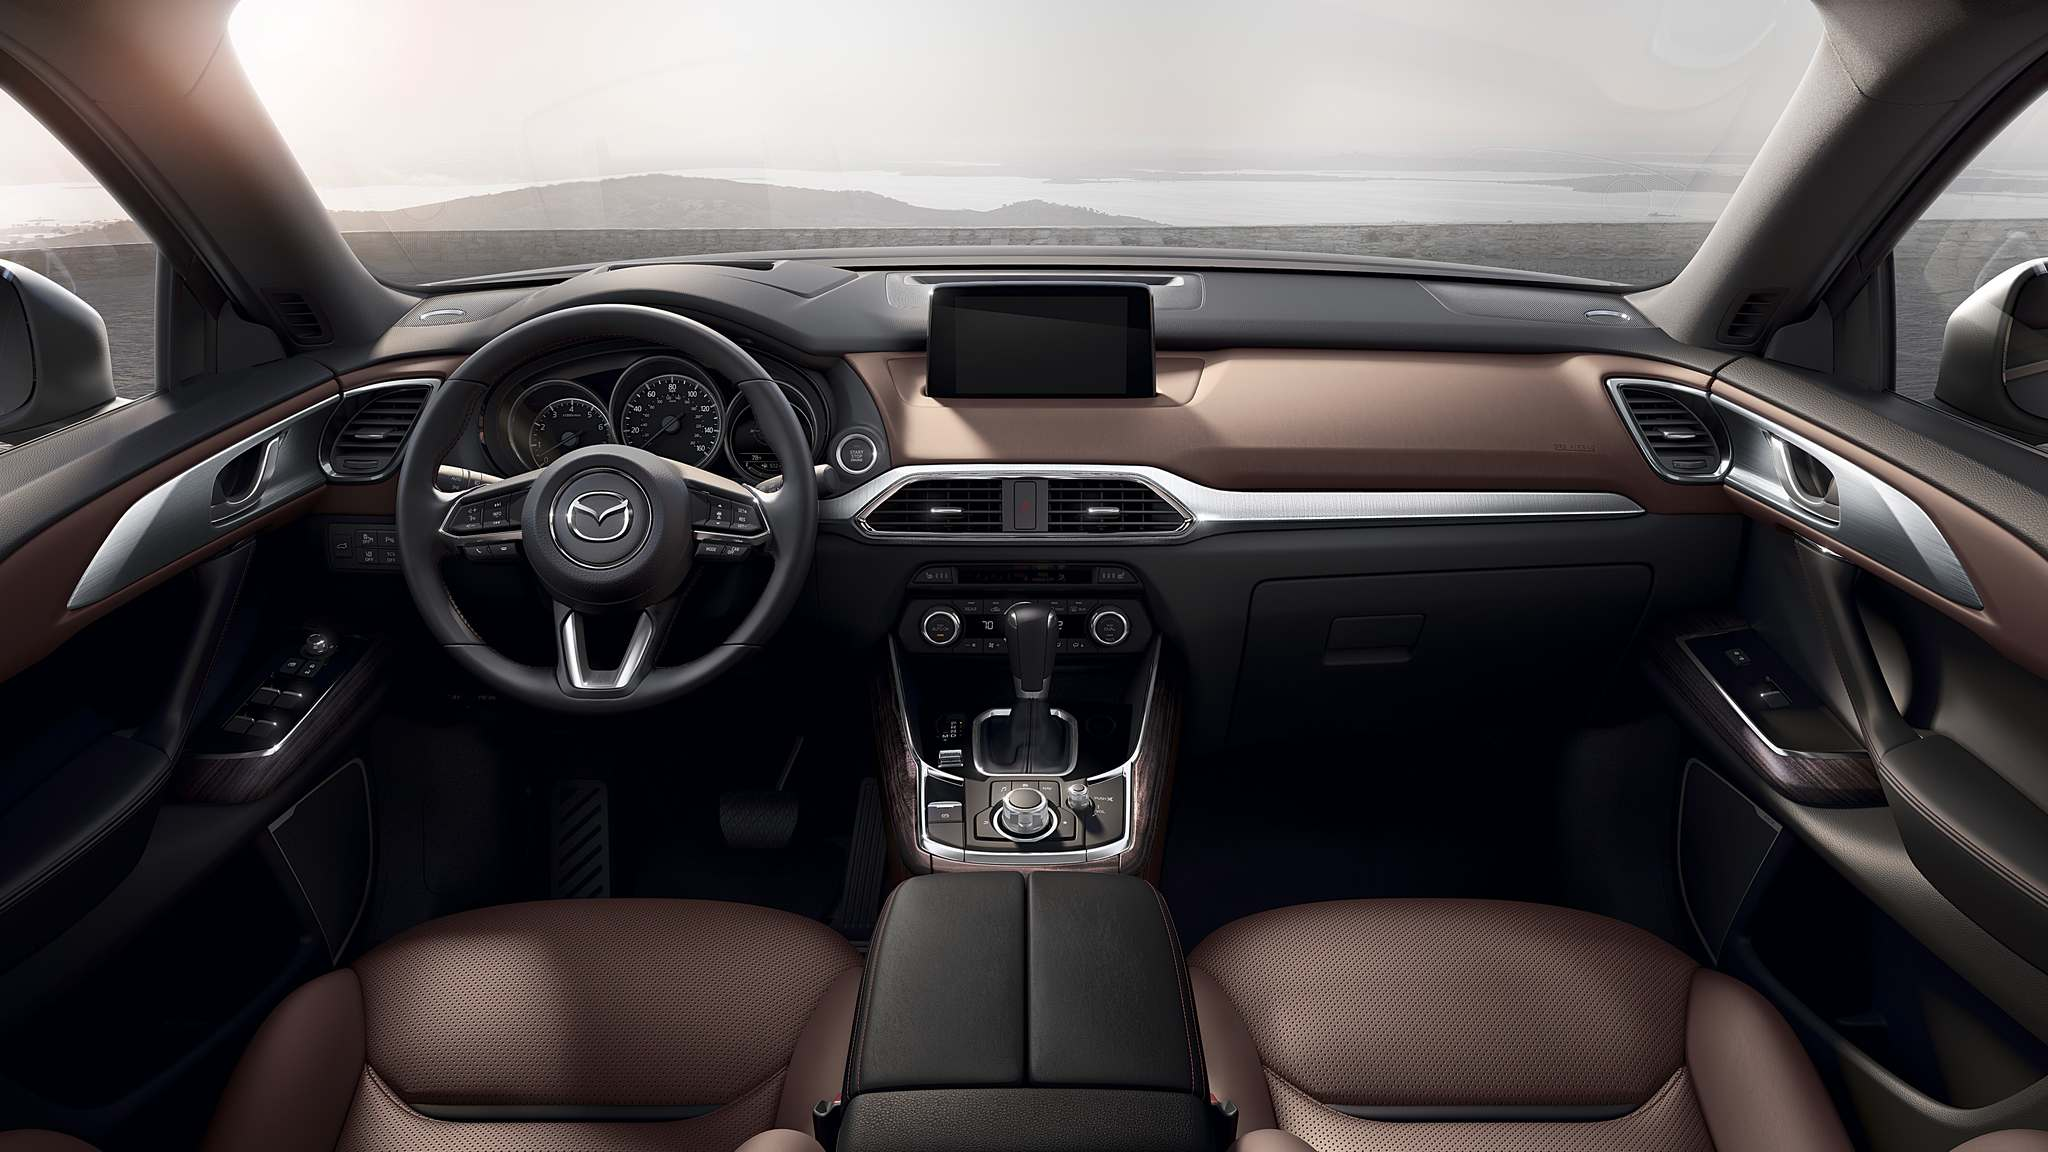 <p>Photos by Mazda Canada</p><p>The 2017 Mazda CX-9 has a comfortable interior, with a design and materials that are superb.</p>